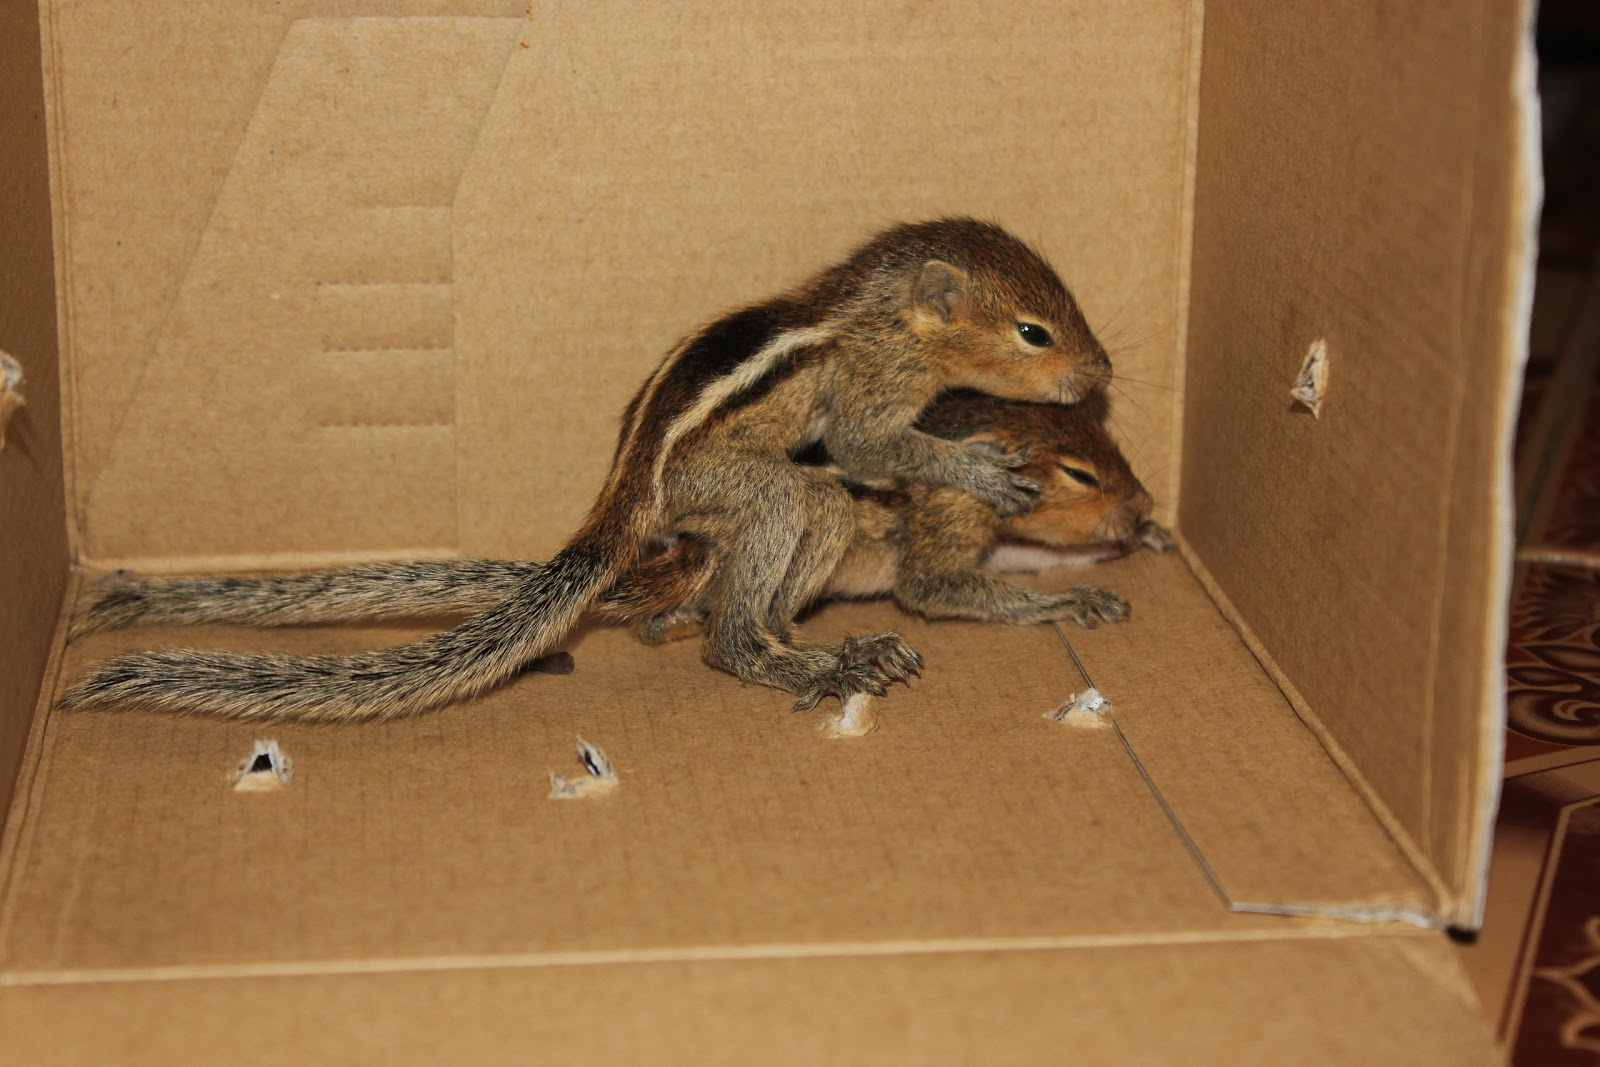 Squirrel baby lost - photo#24